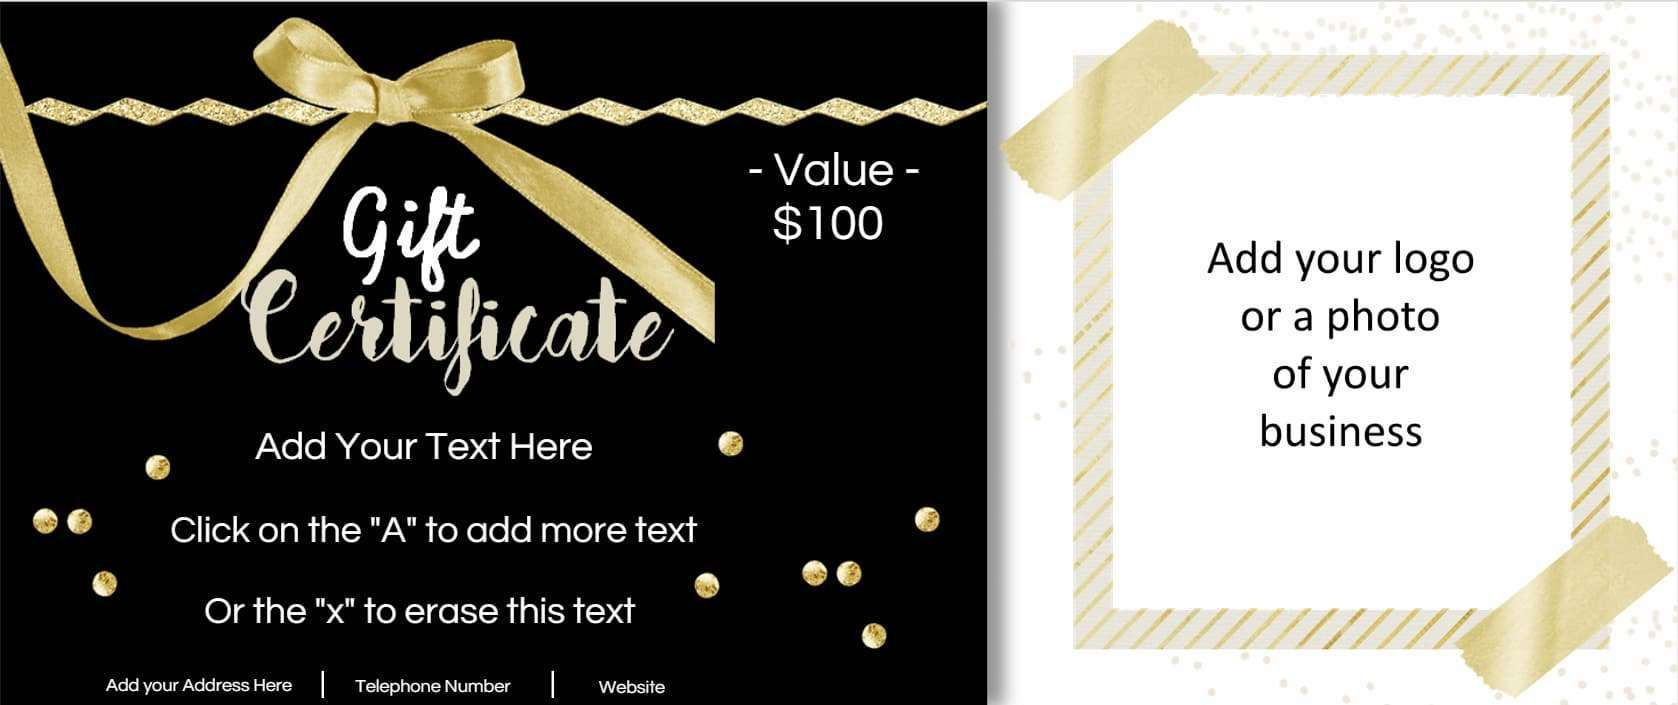 001 Stupendou Free Template For Gift Certificate Image  Printable Birthday Mac In WordFull